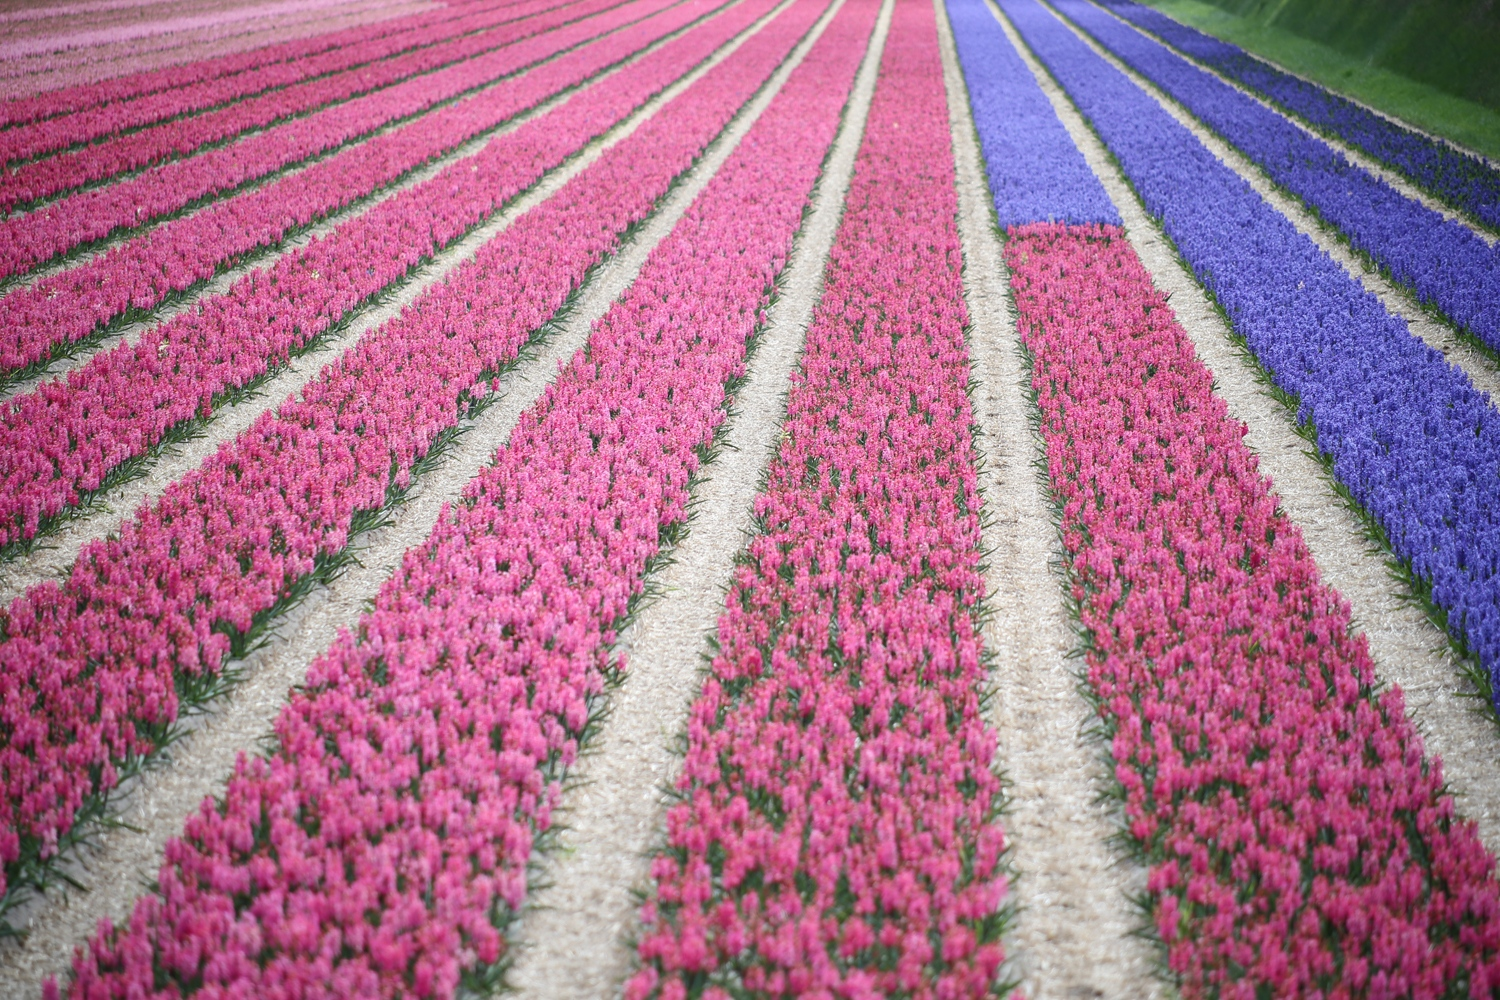 A field of pink and purple hibiscus is seen near Lisse, Netherlands.